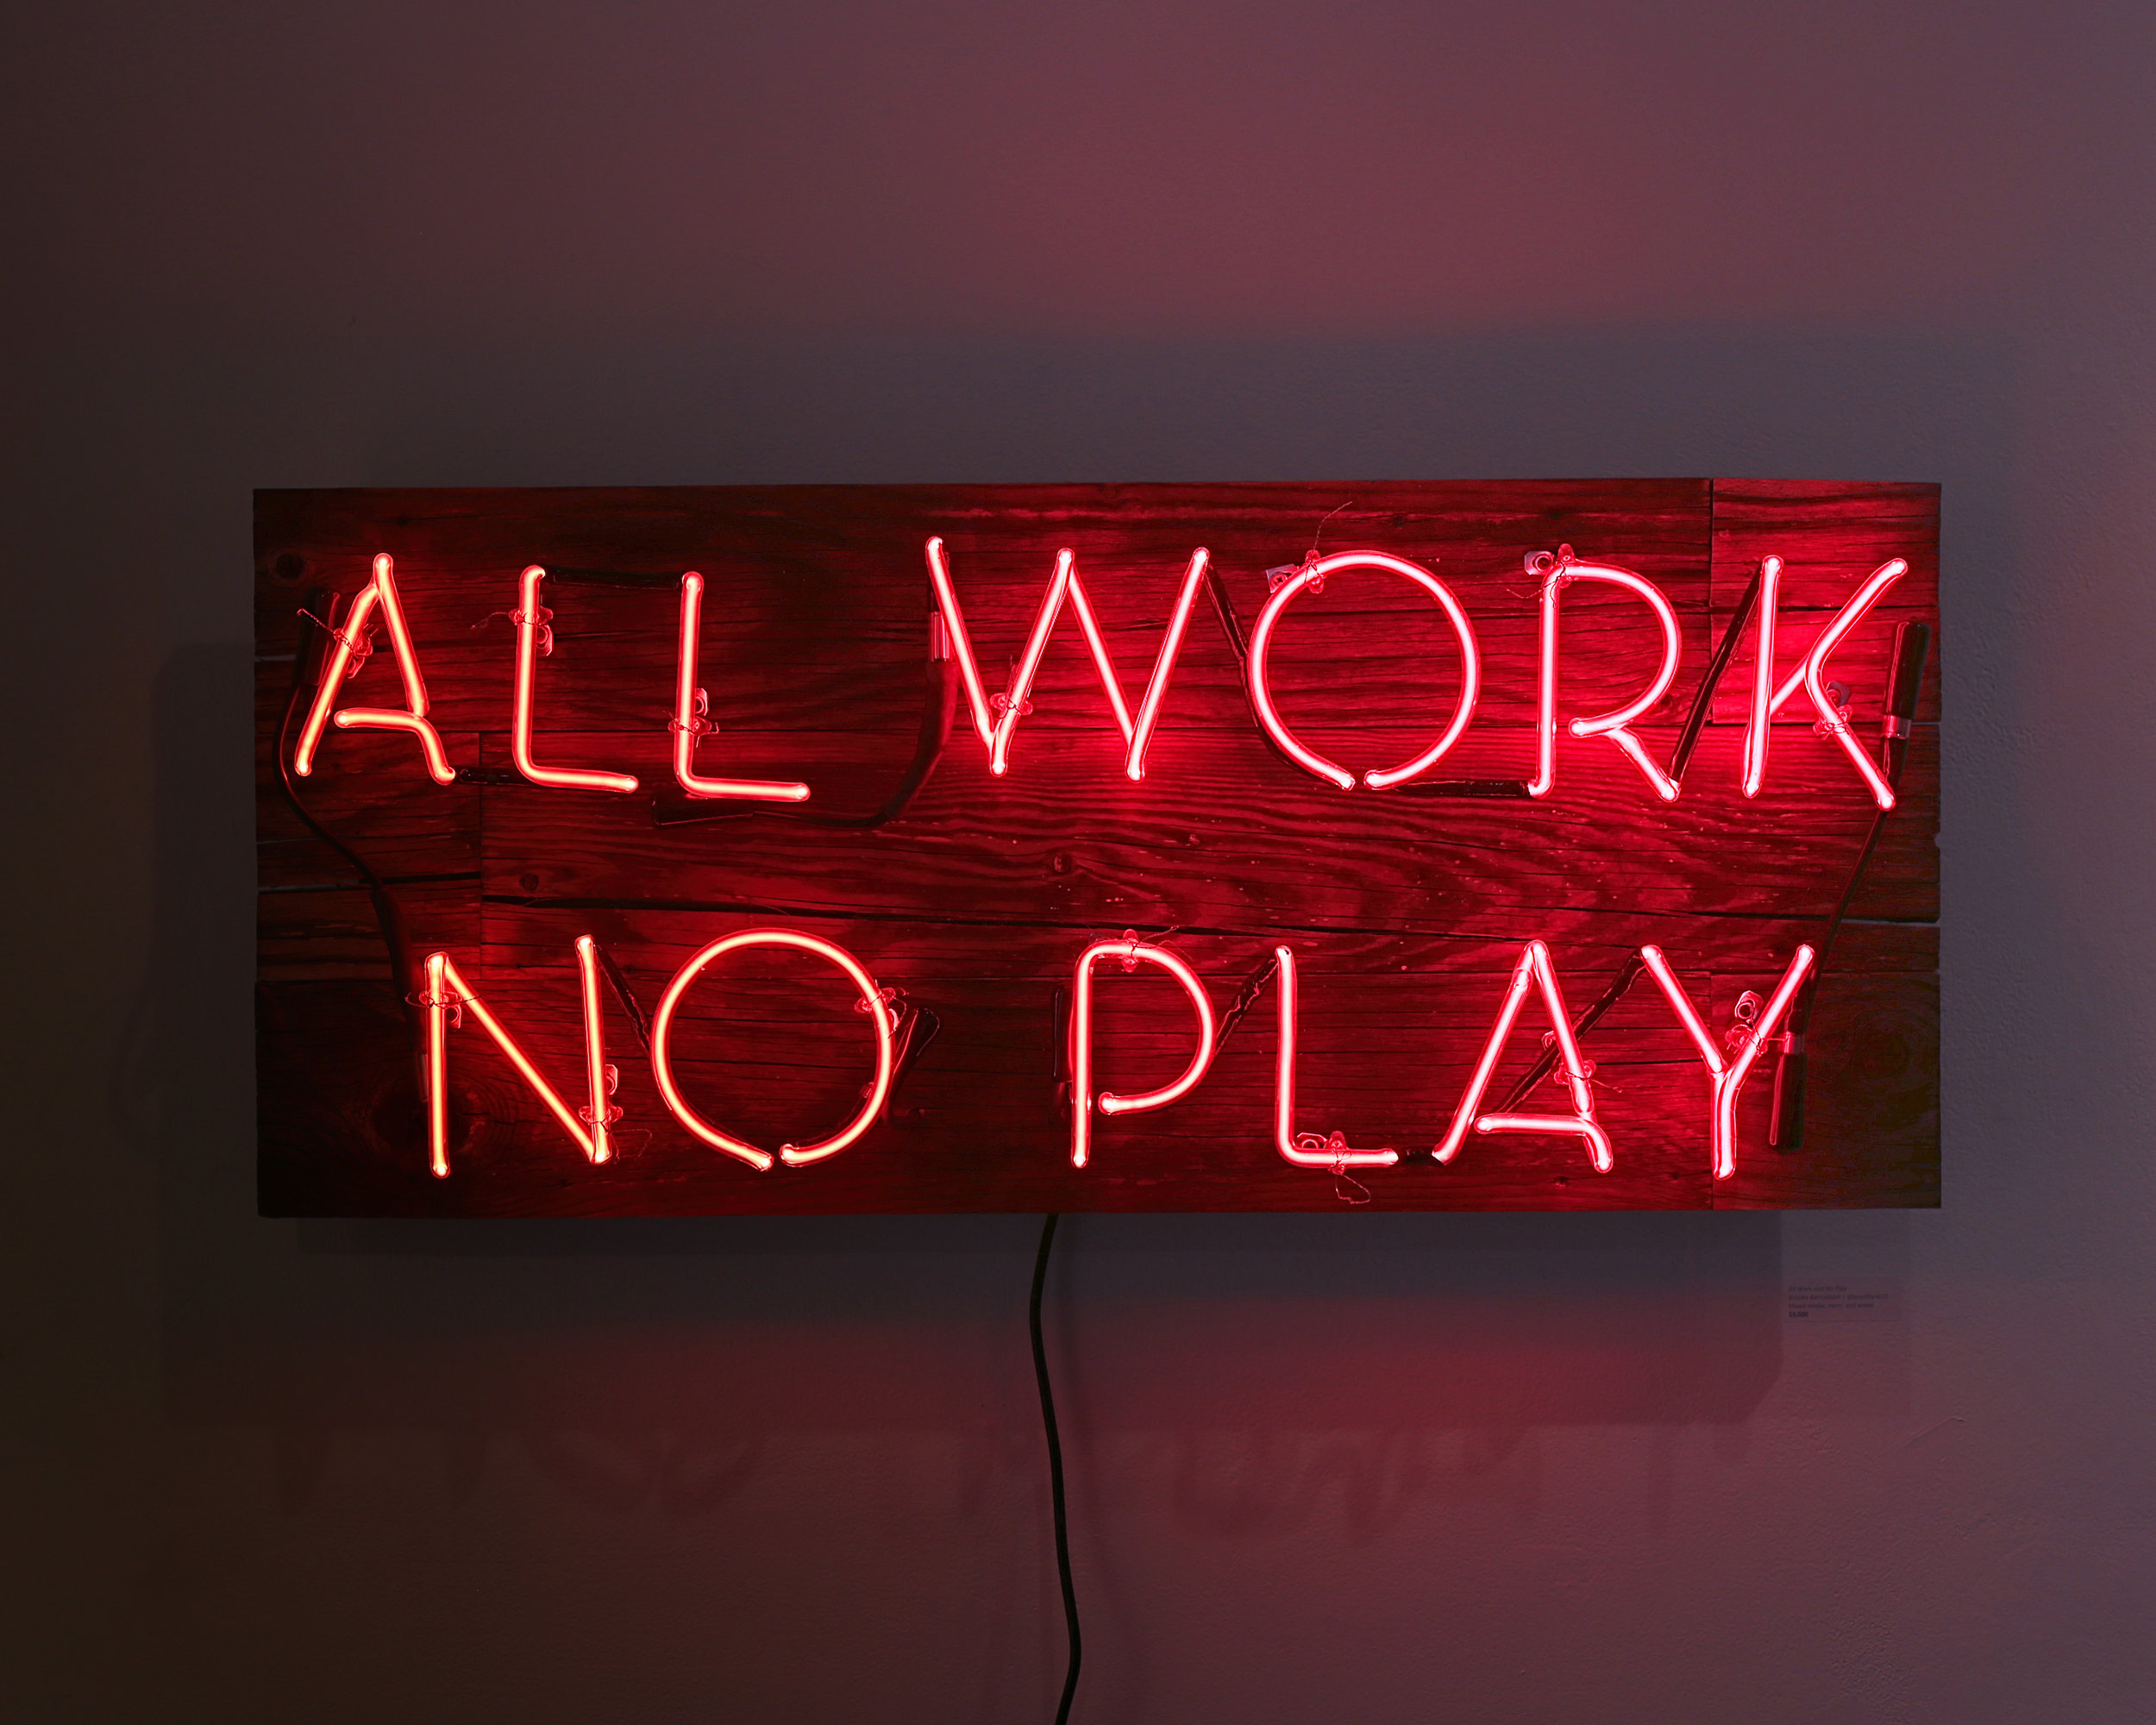 AllWorkandNoPlay_front_1.jpg